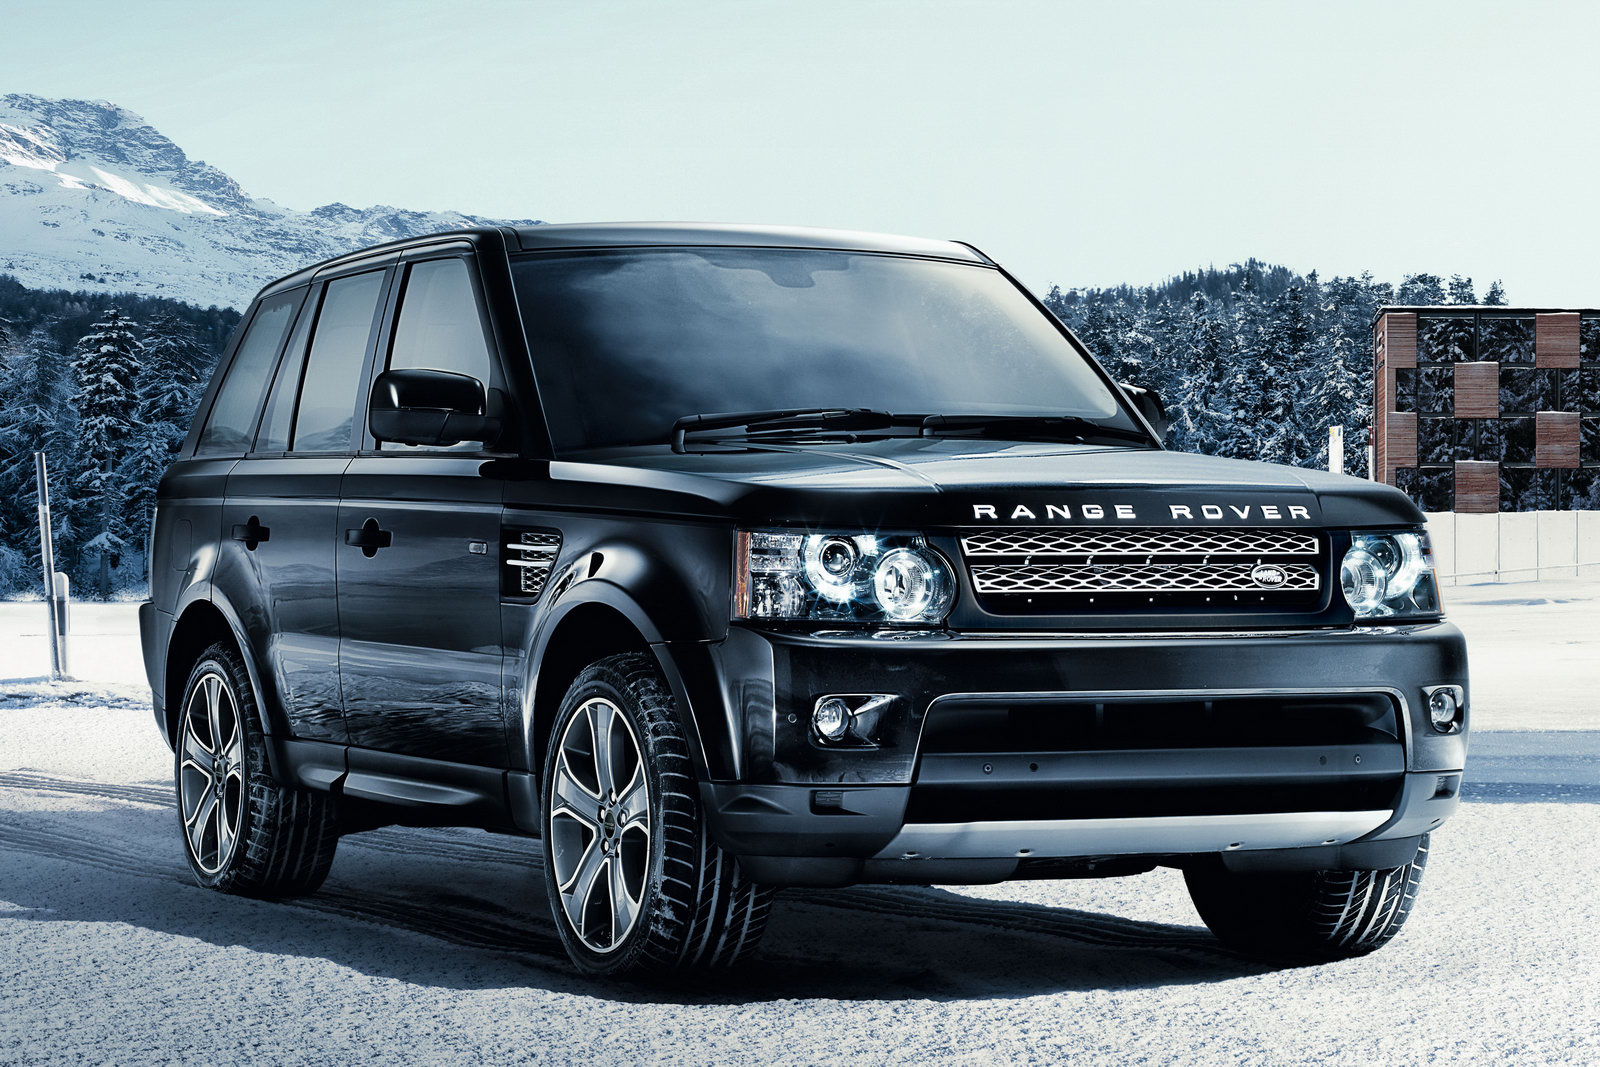 2012 range rover amazing wallpapers. Black Bedroom Furniture Sets. Home Design Ideas